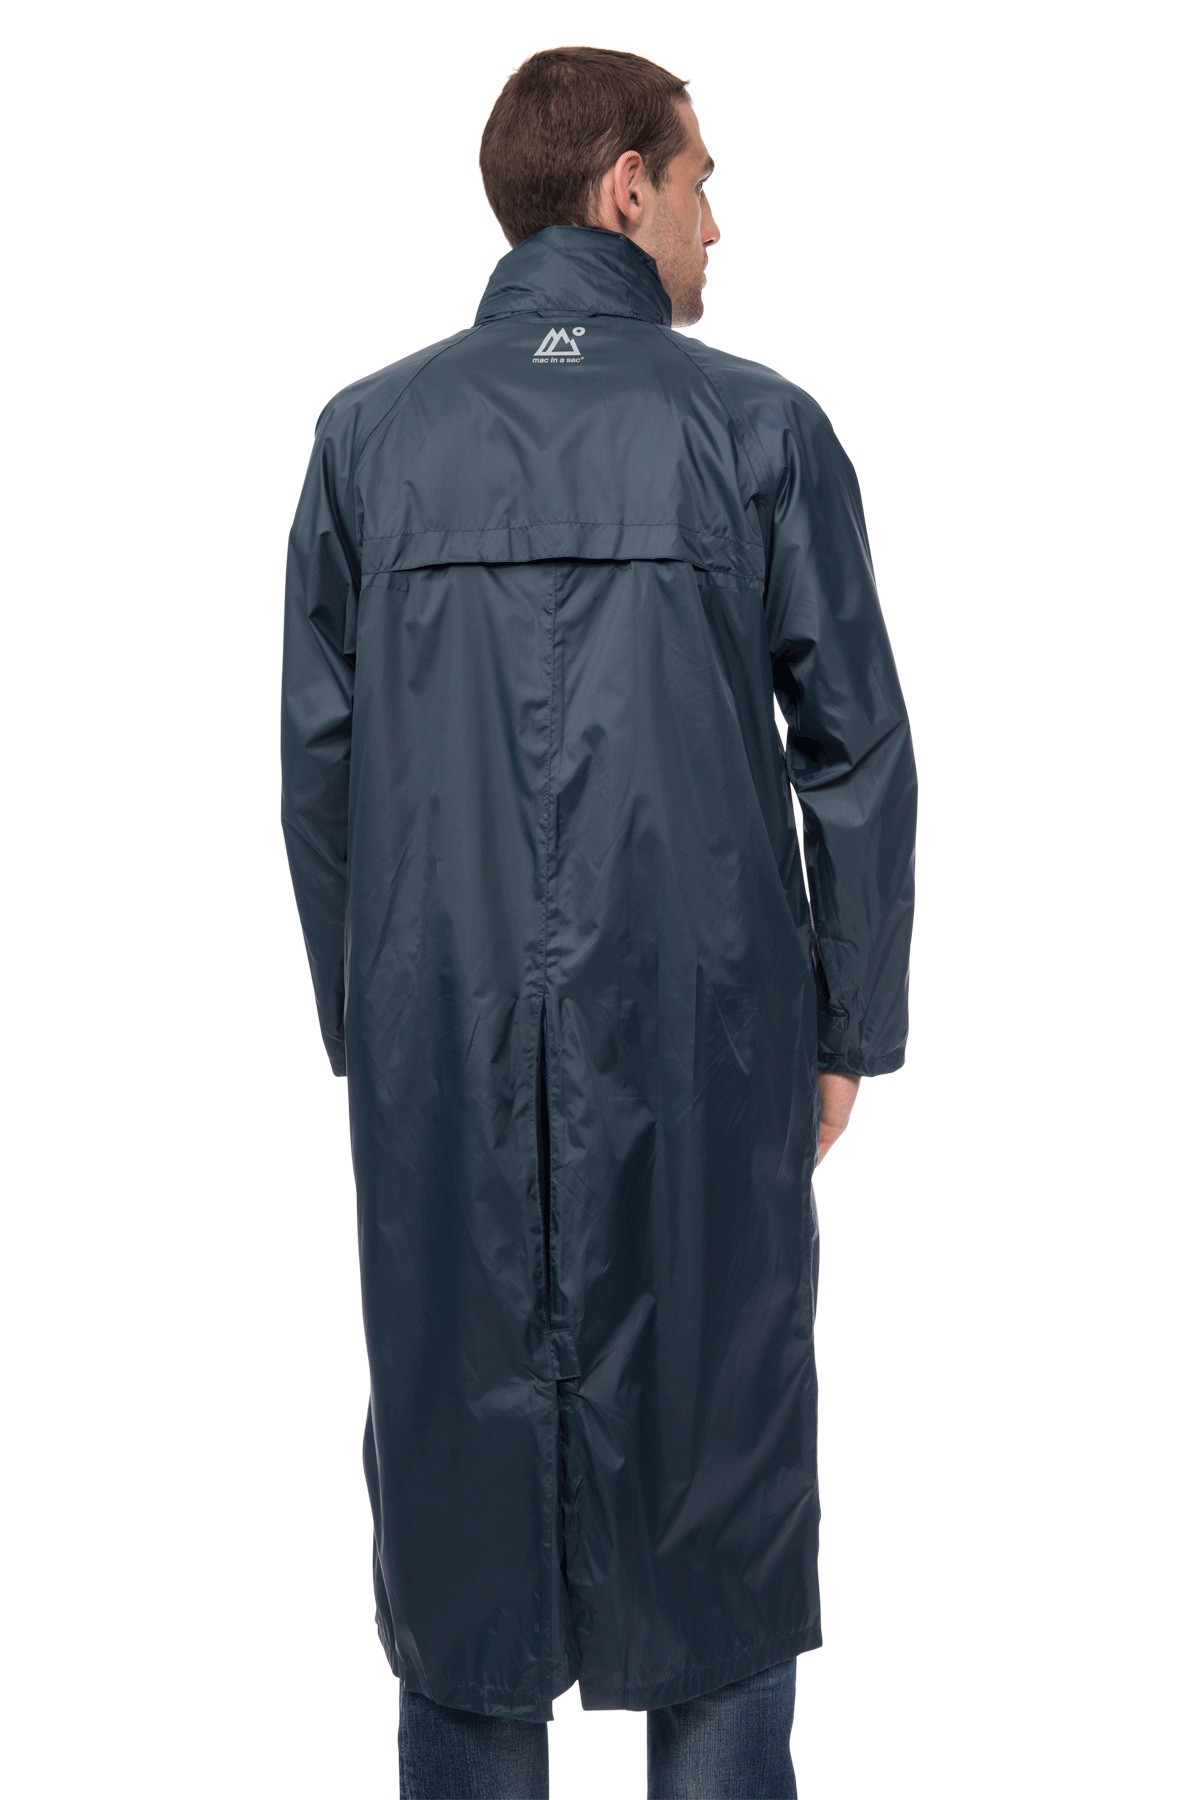 Mac In A Sac Unisex Travel Raincoat Walk The Storm